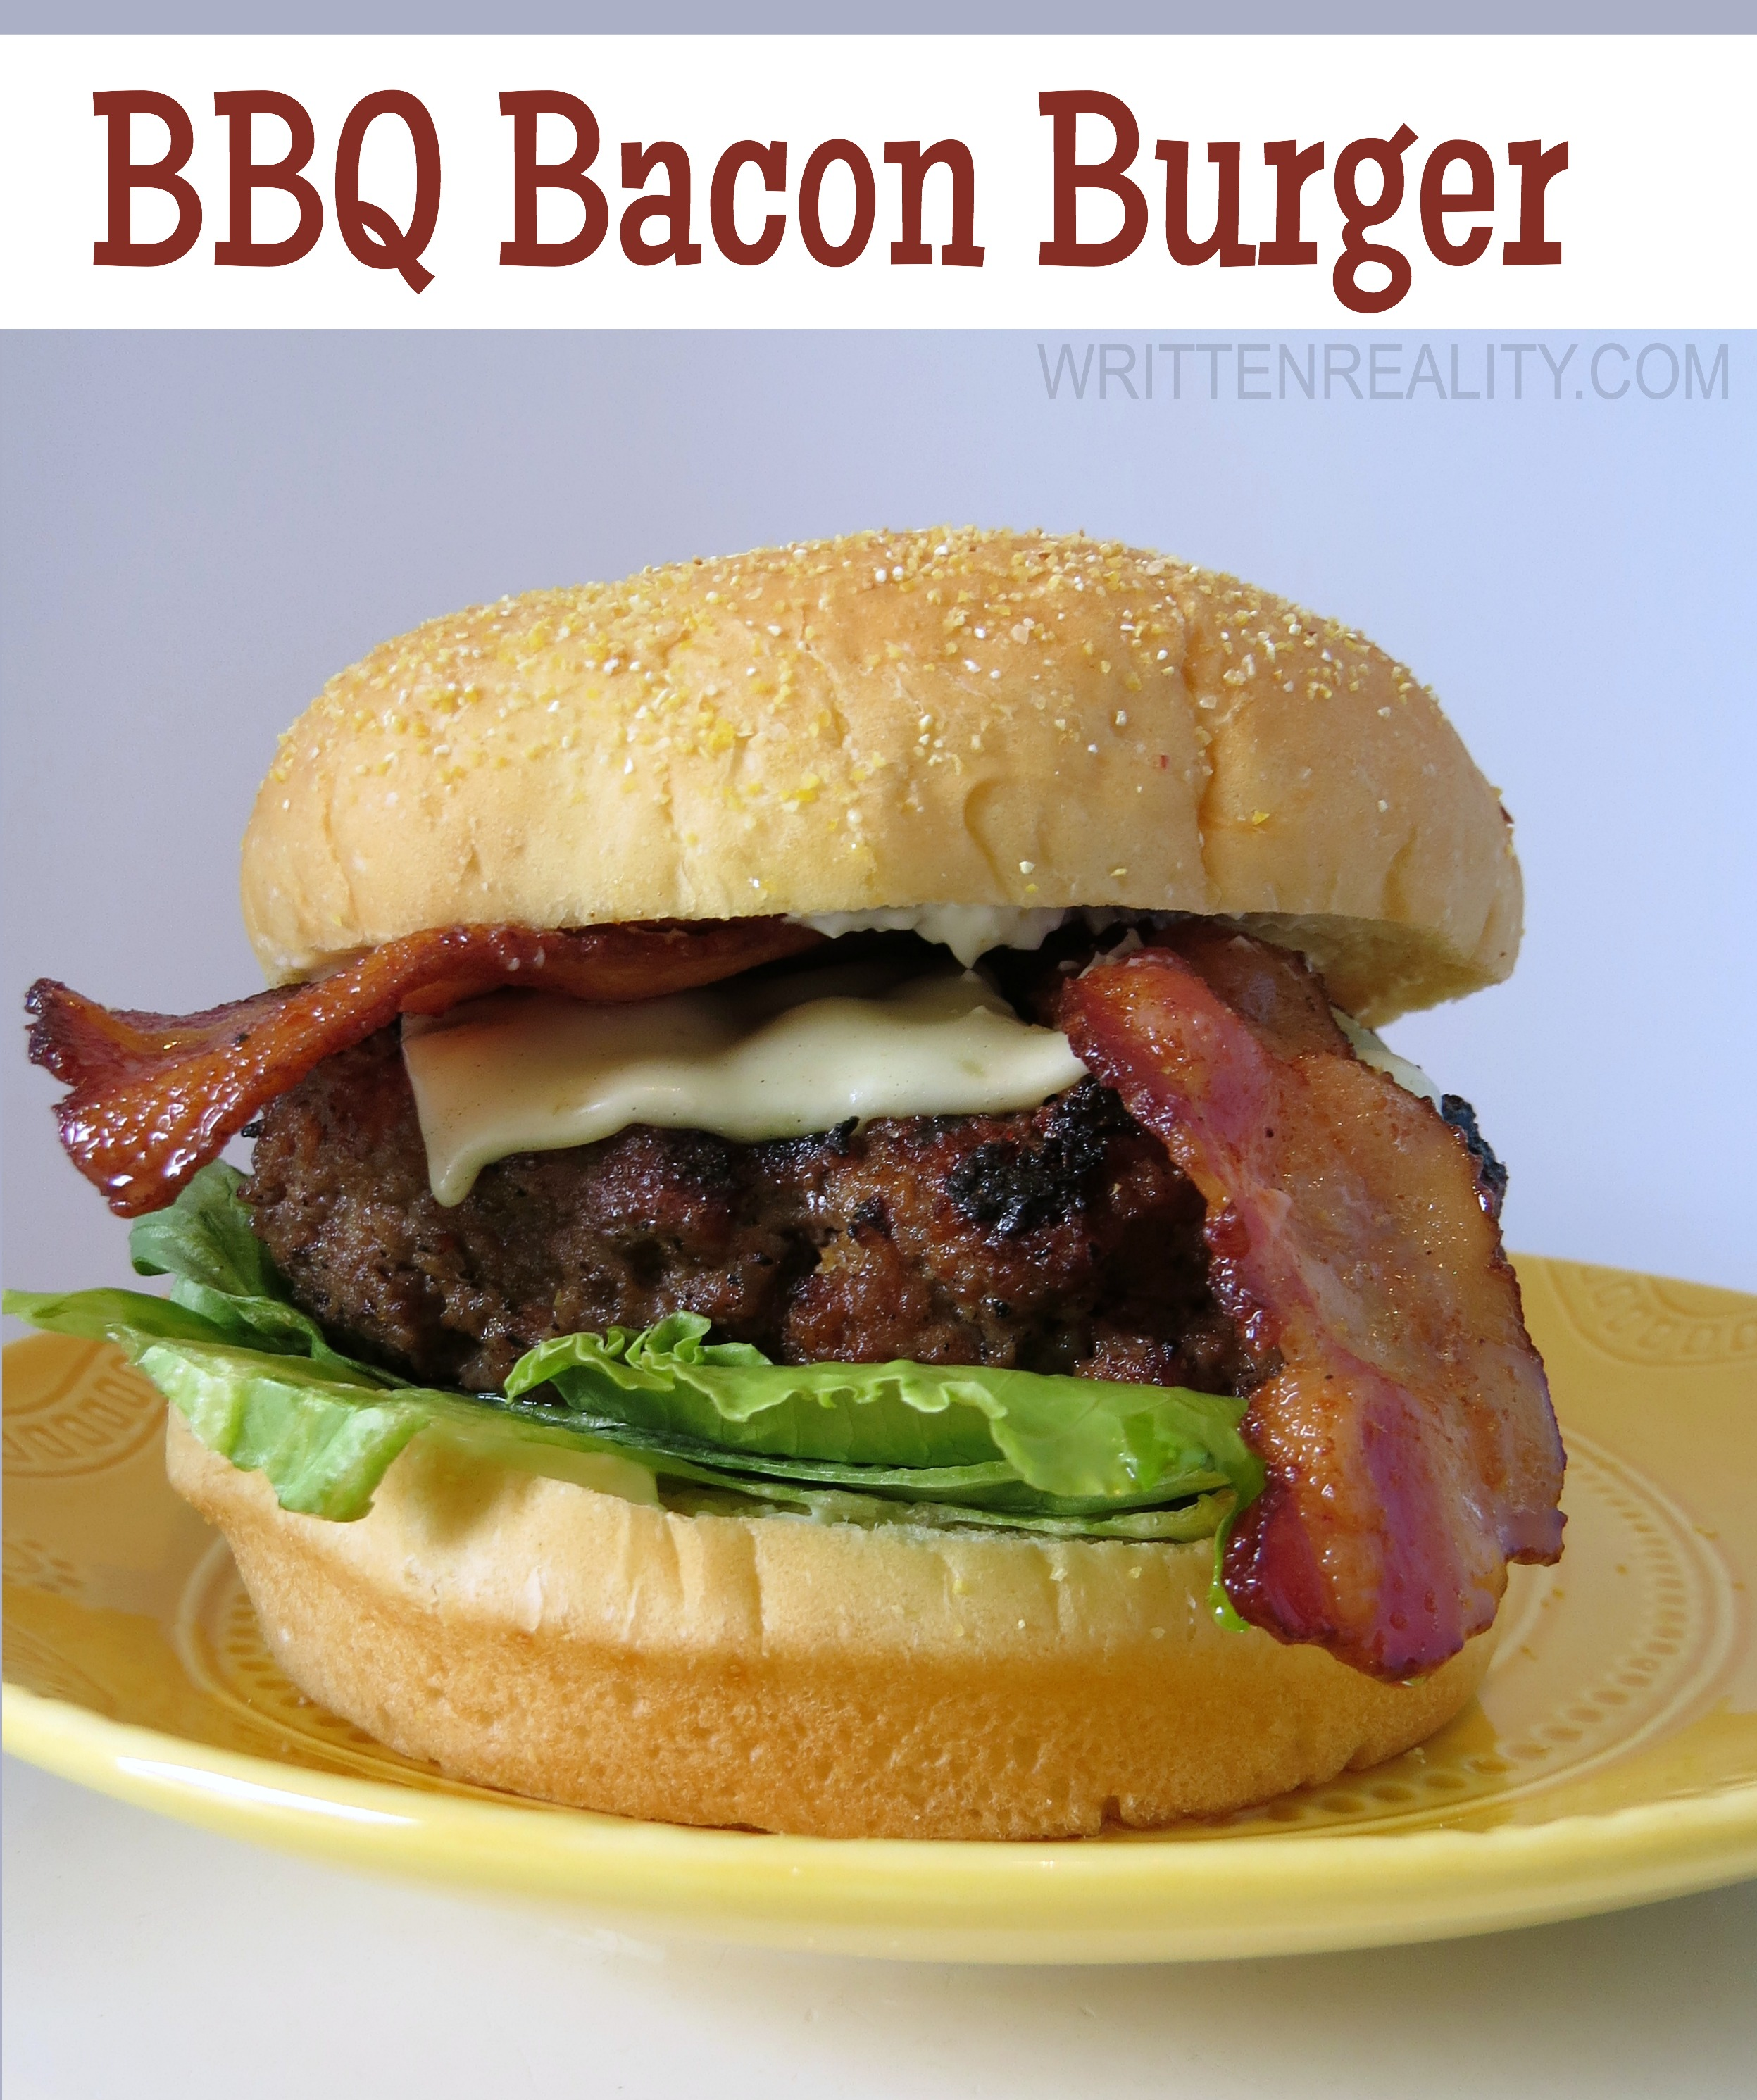 BBQ Bacon Burger Recipe Card - Written Reality